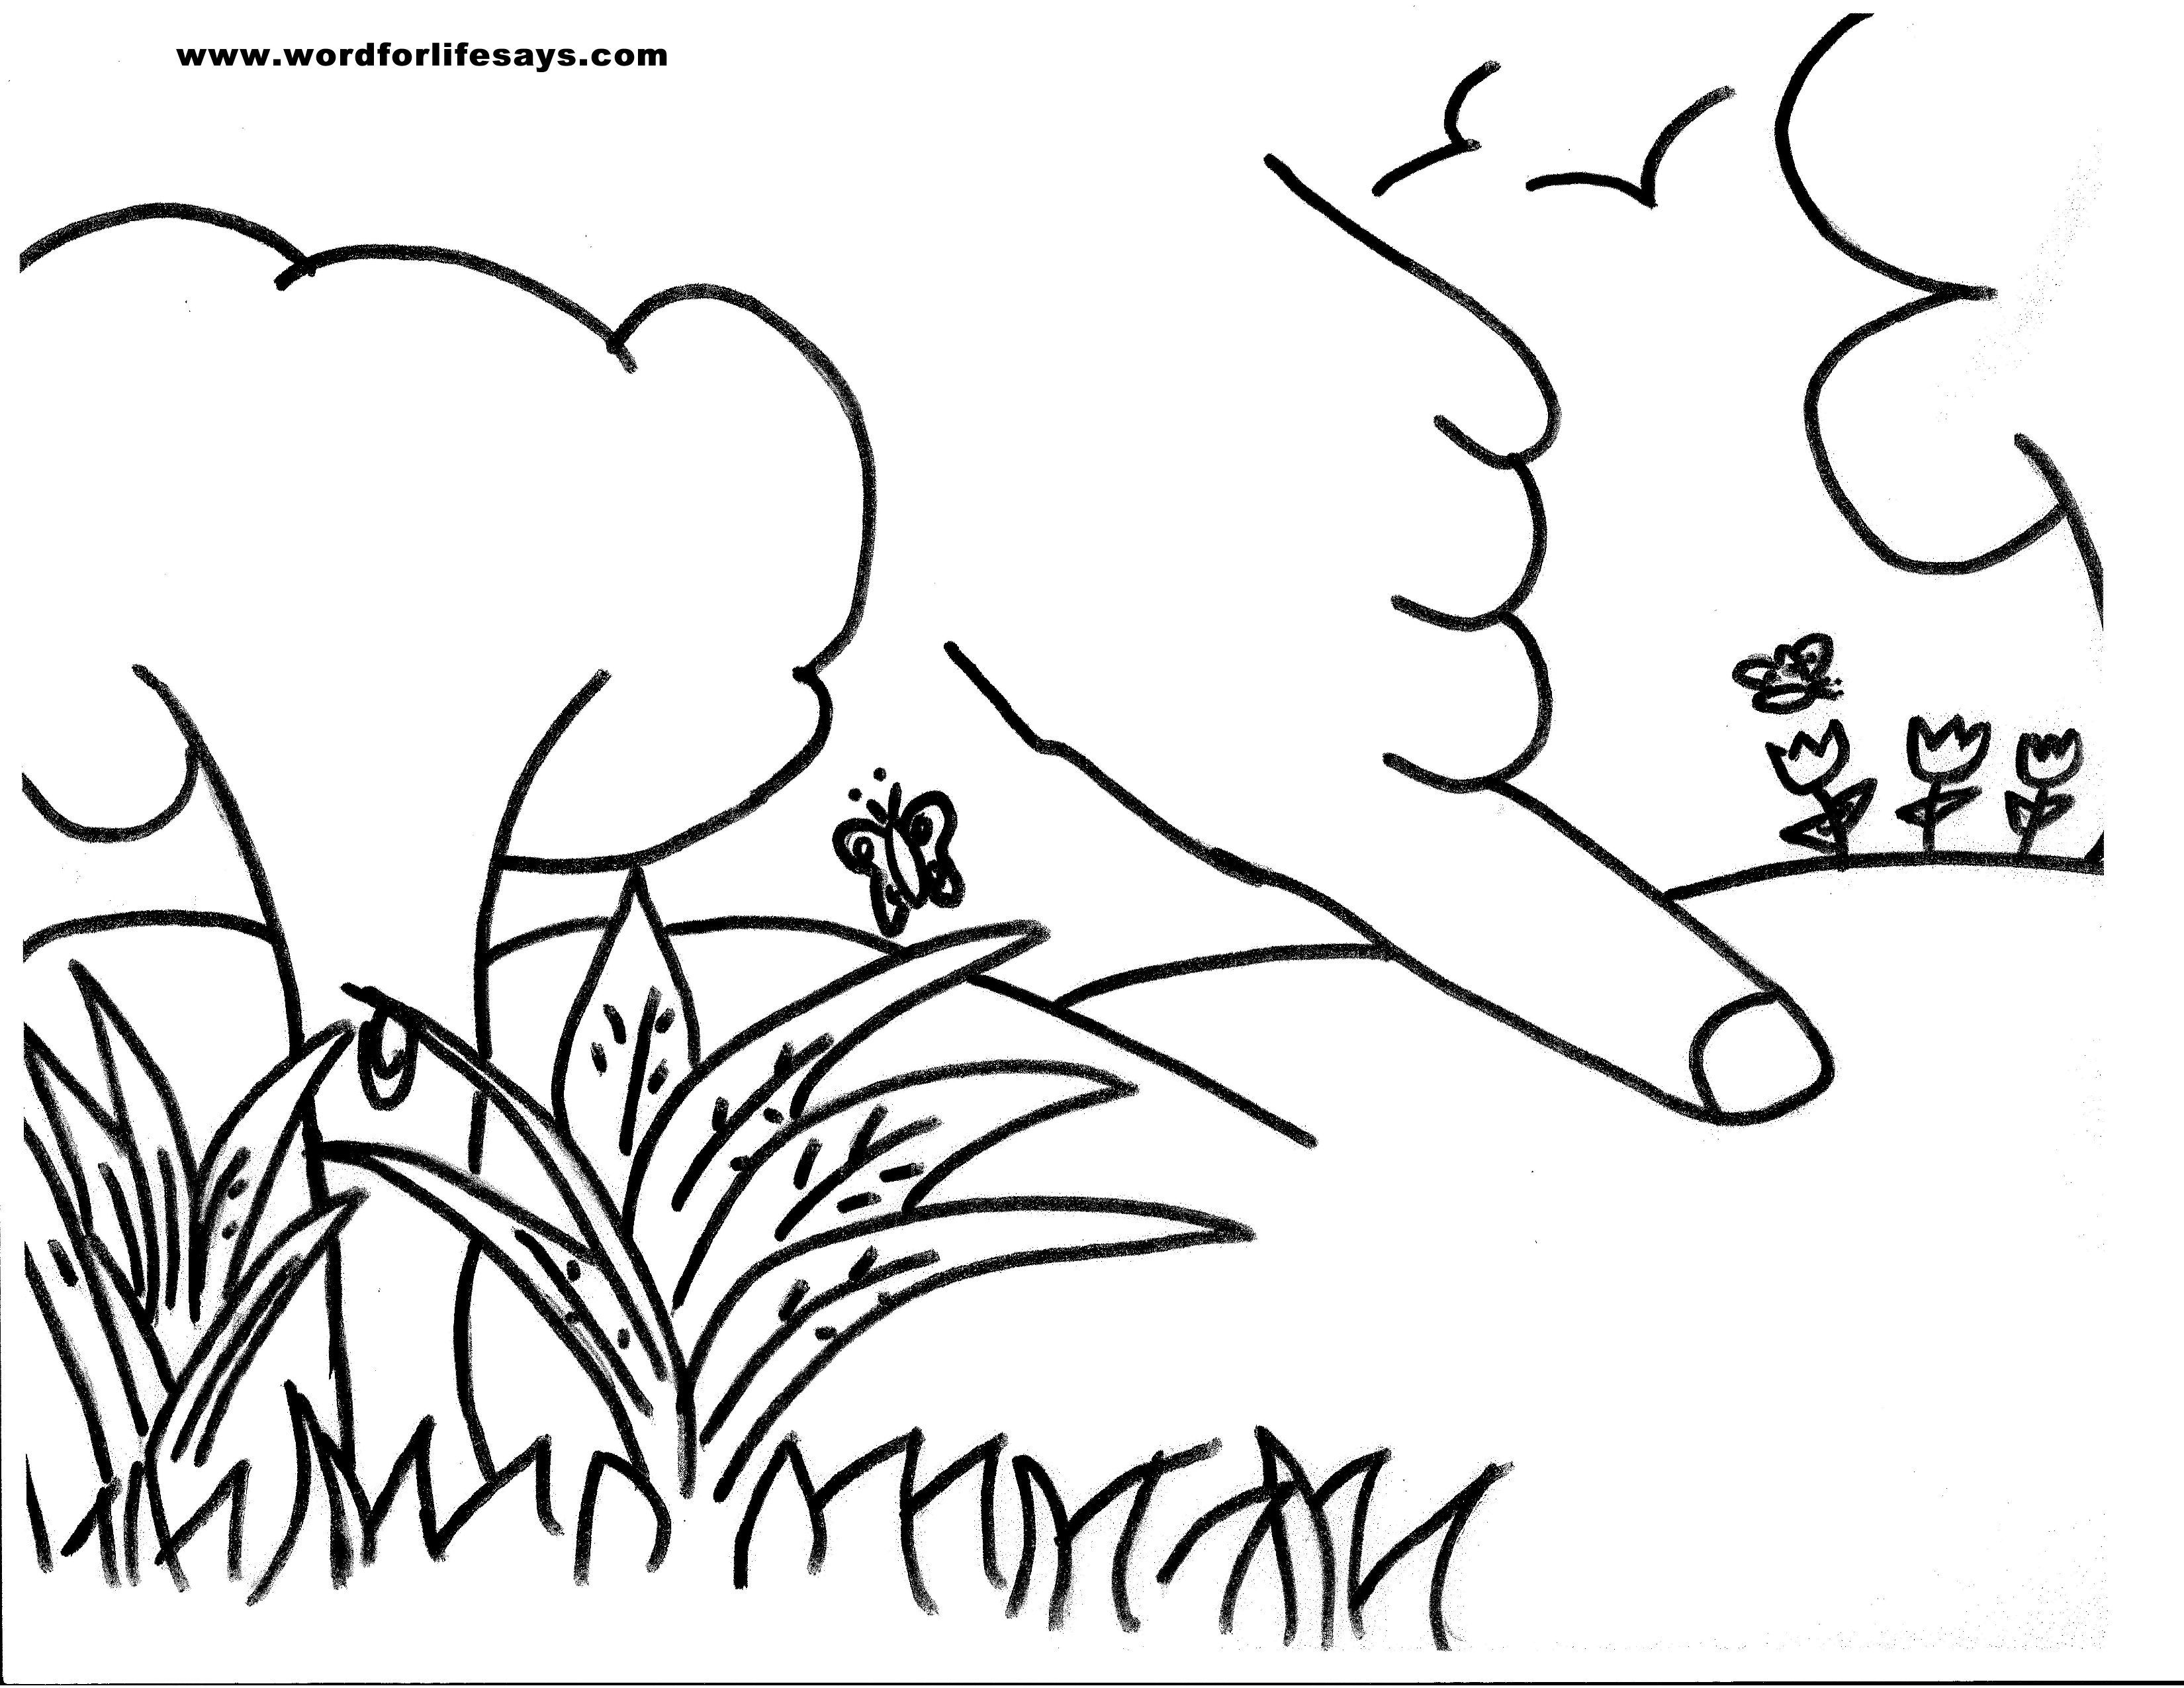 Tree Of Knowledge Of Good And Evil Free Coloring Pages Download Free Coloring Pages Coloring Pages Free Coloring